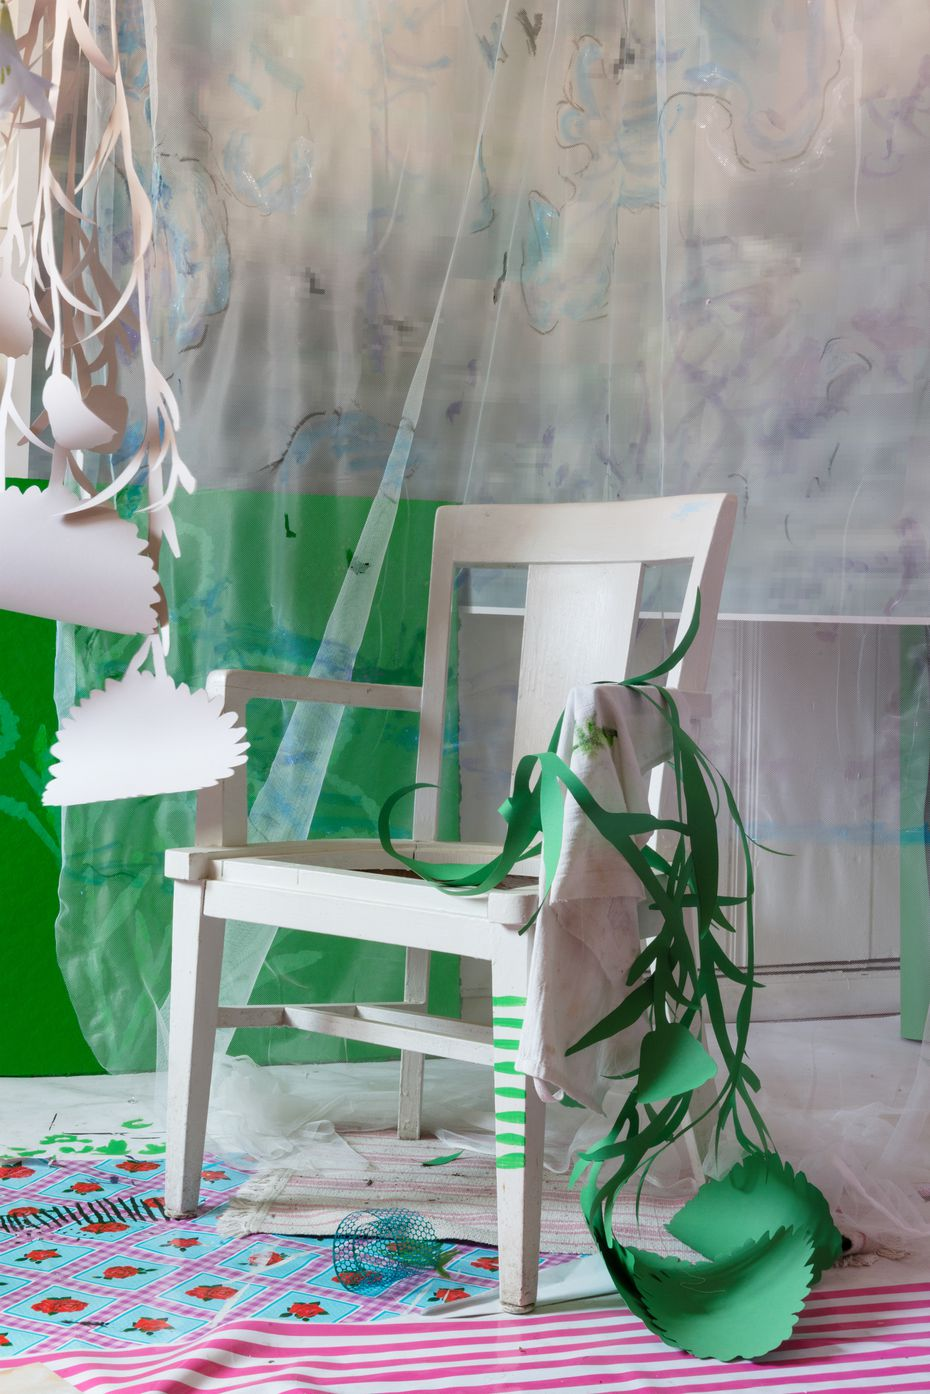 """In works like """"Big Chair,"""" artist David Gilbert creates installations using materials such as furniture, paper cutouts, swaths of fabric, stickers, yarn, and handmade sculptures and paintings — which he then photographs, displaying only the finished prints."""